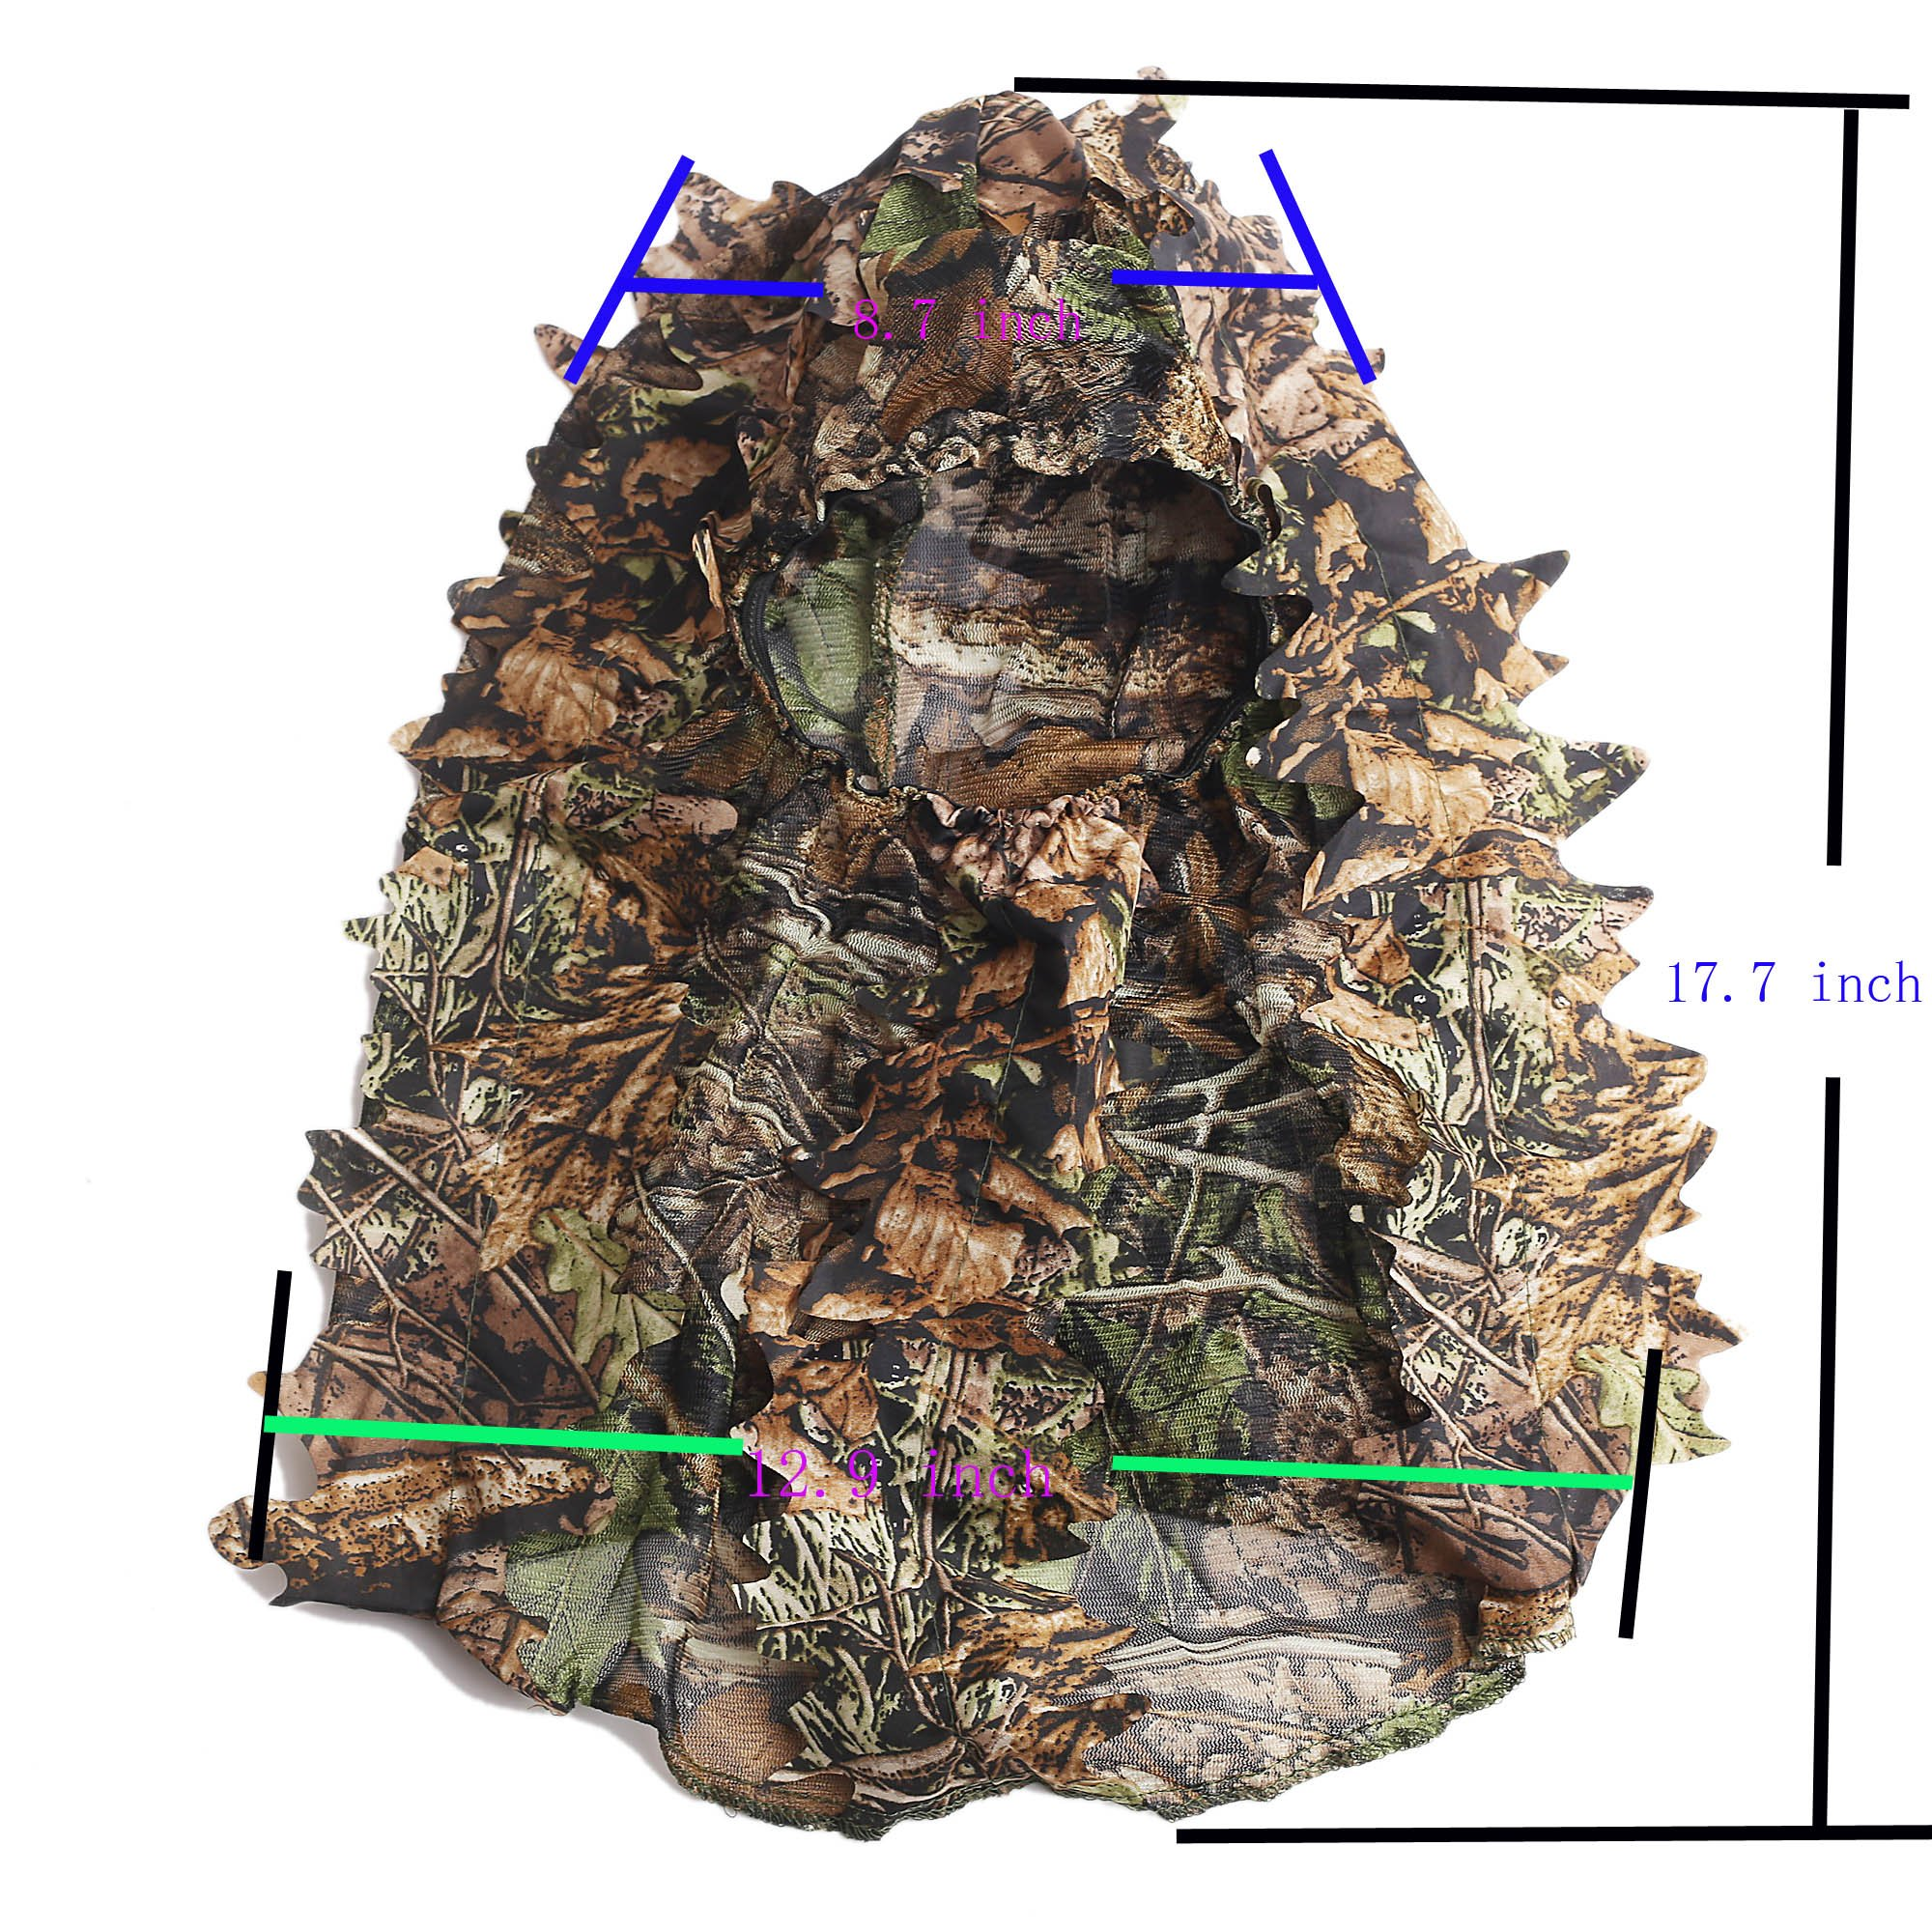 ABCAMO Light Weight Hunting Camouflage Full Cover 3D Leafy Face Mask by ABCAMO (Image #7)